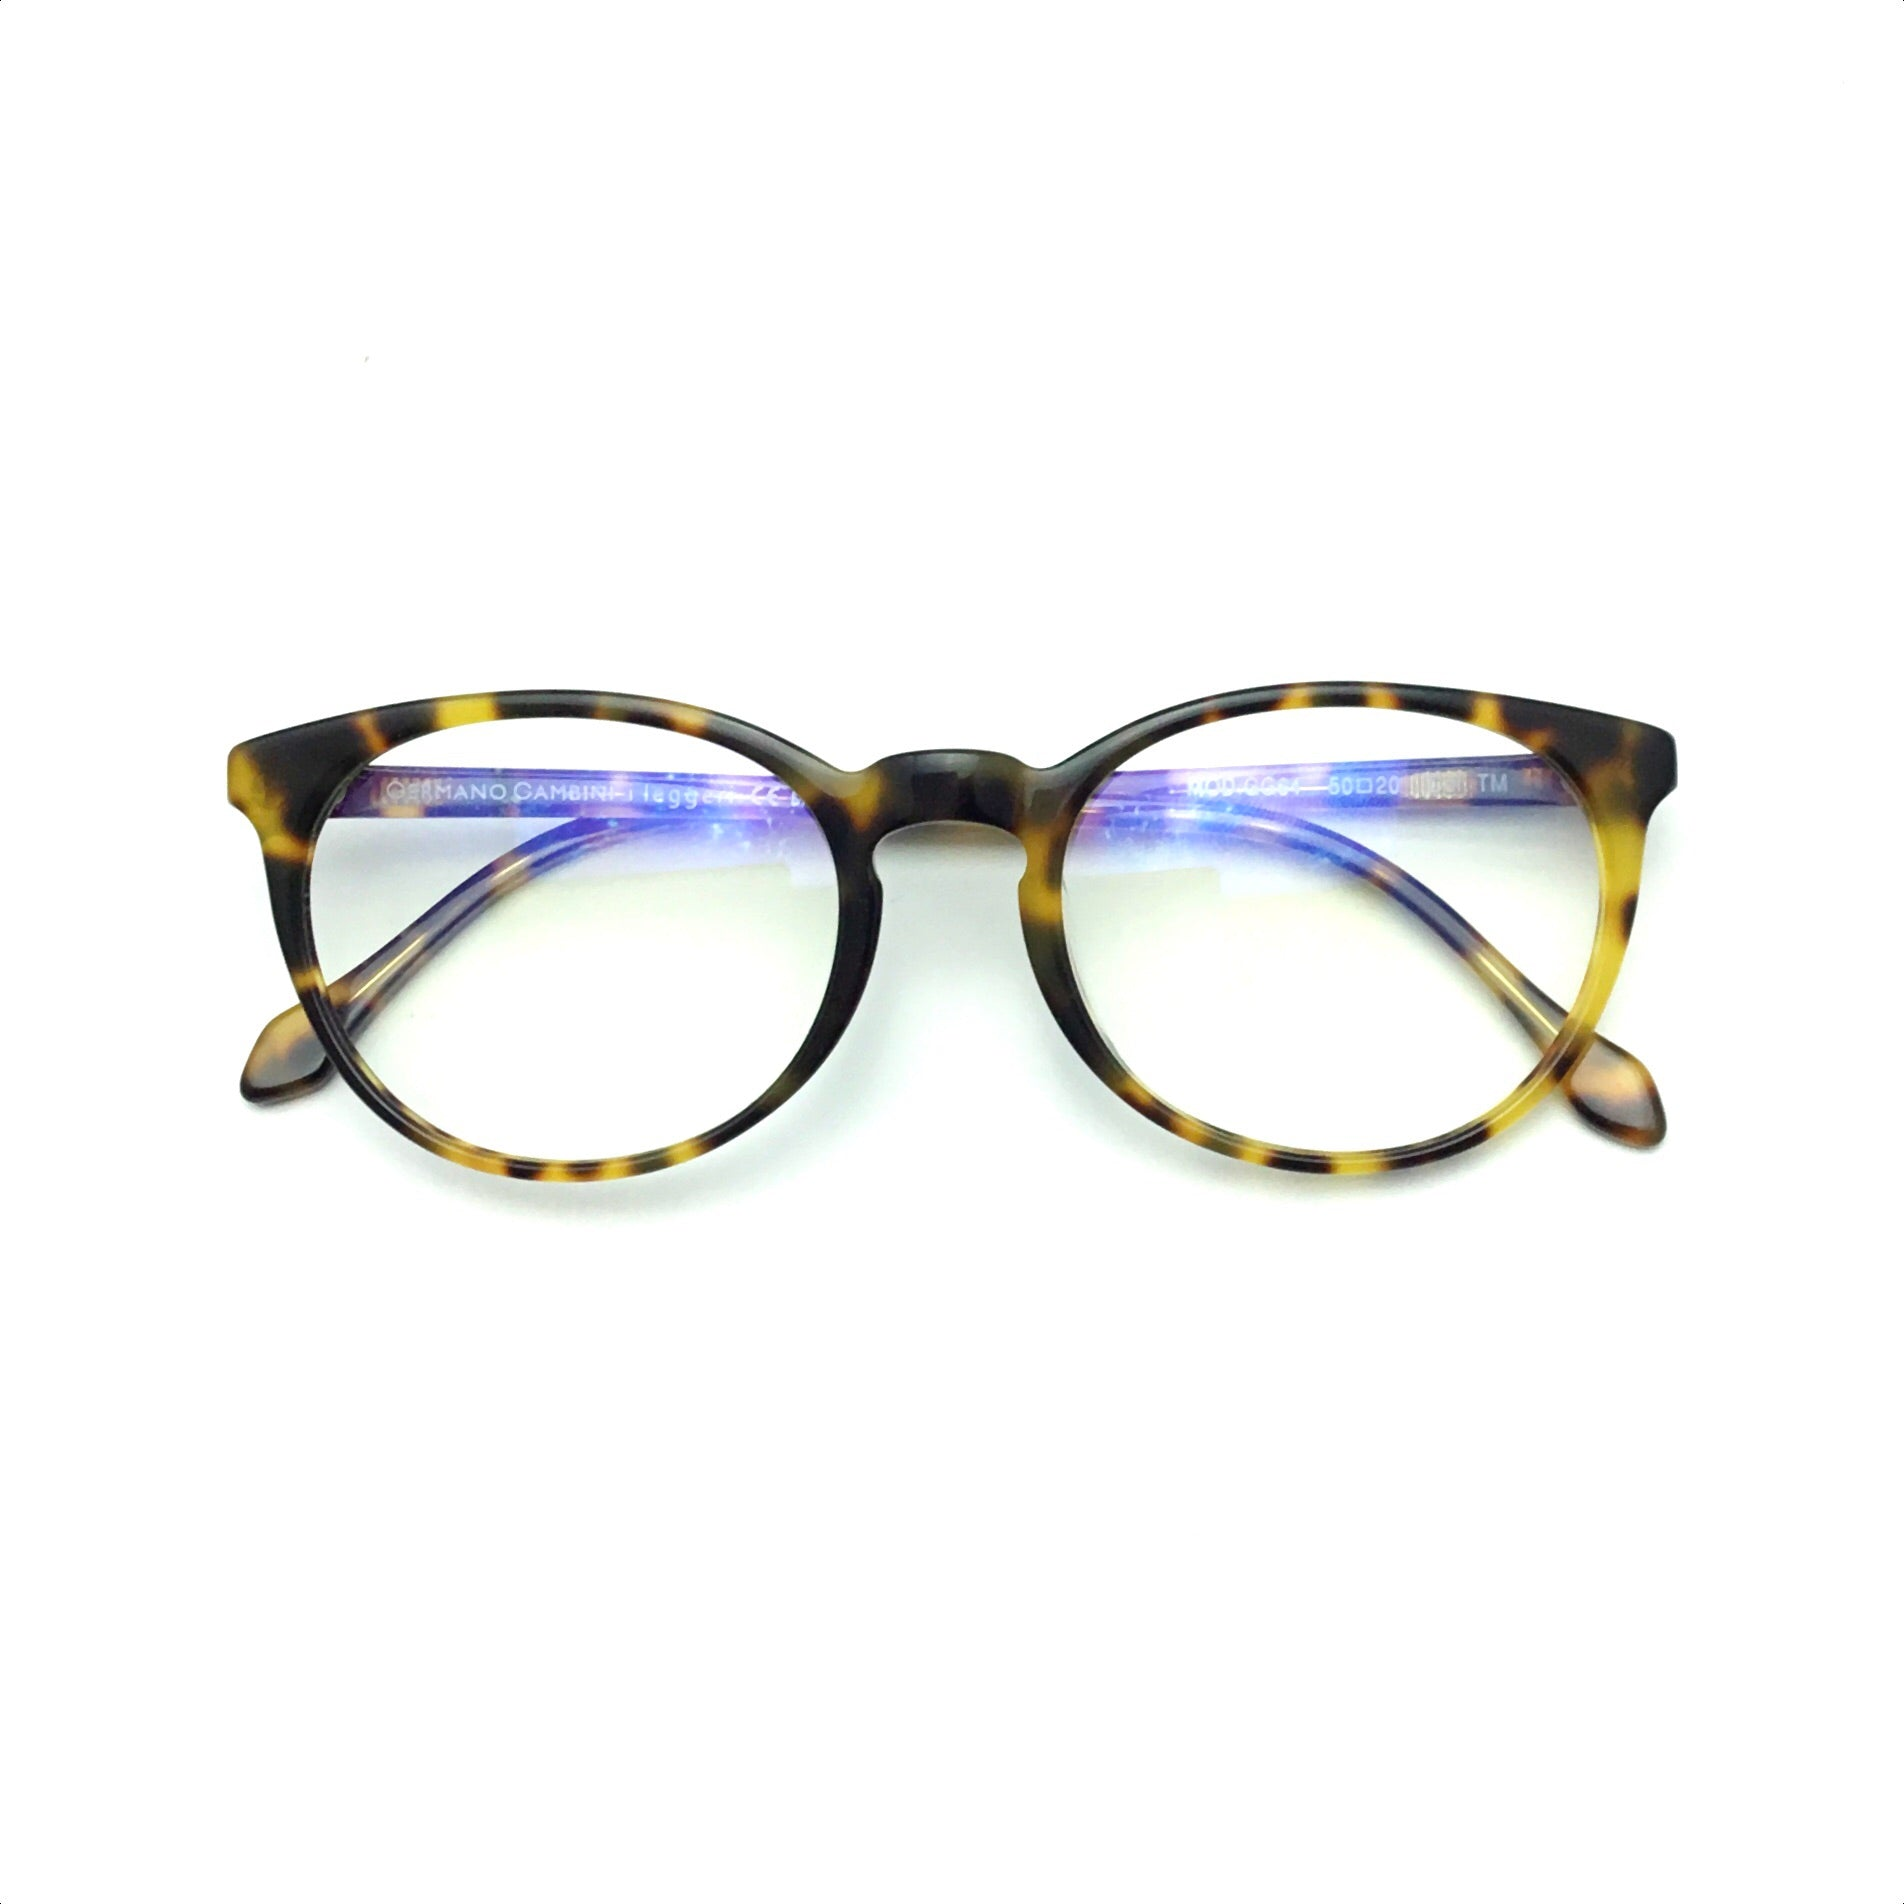 Germano Gambini Glasses $219 ITALY L8